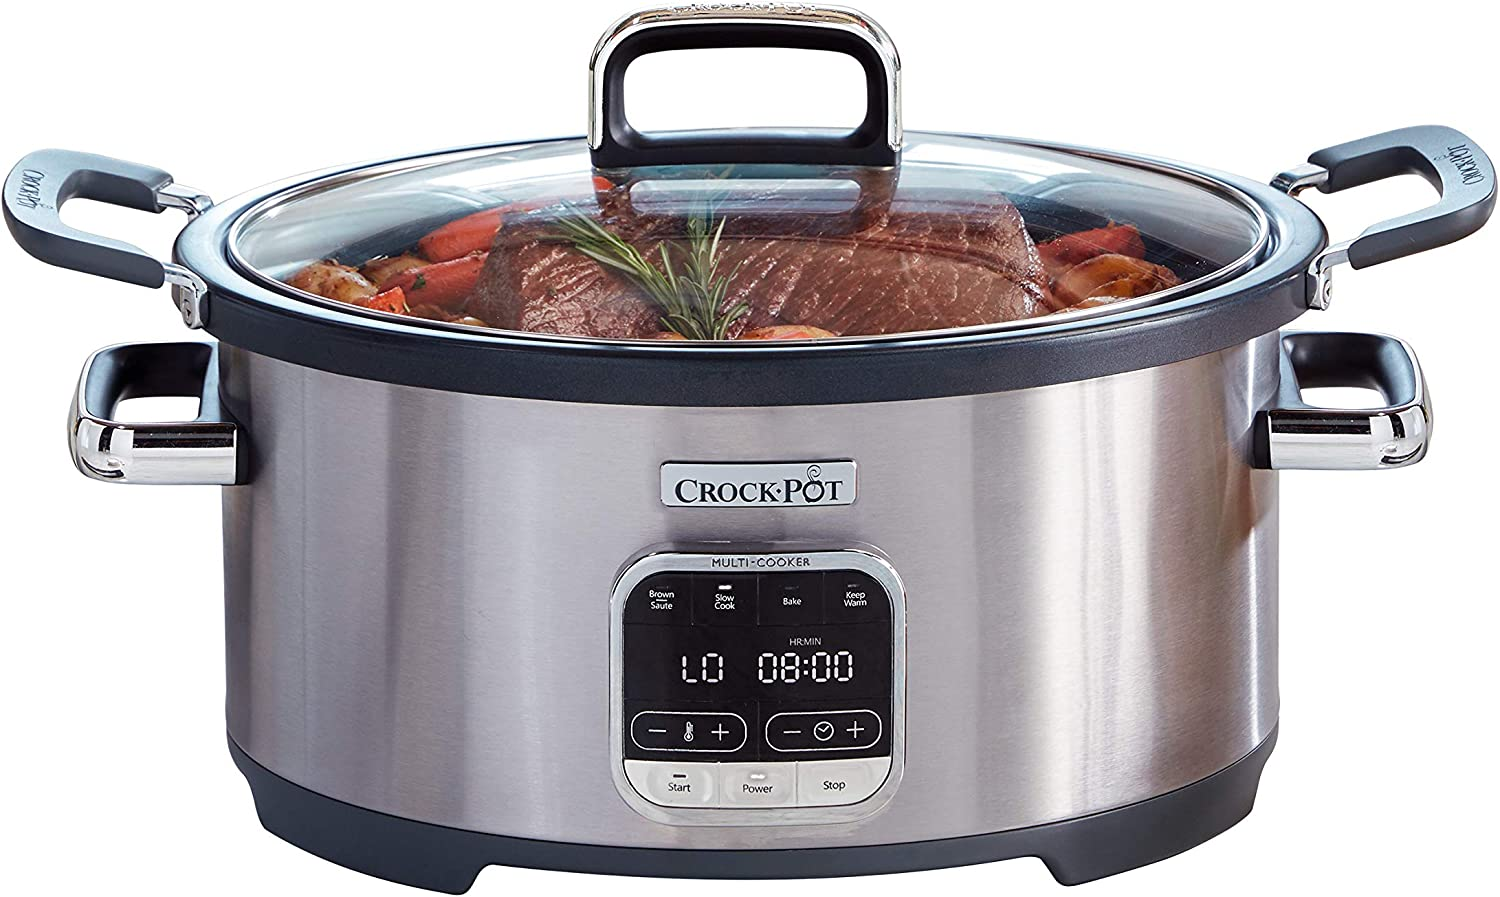 Crock-Pot 3-in-1 Multi-Cooker, Stainless Steel